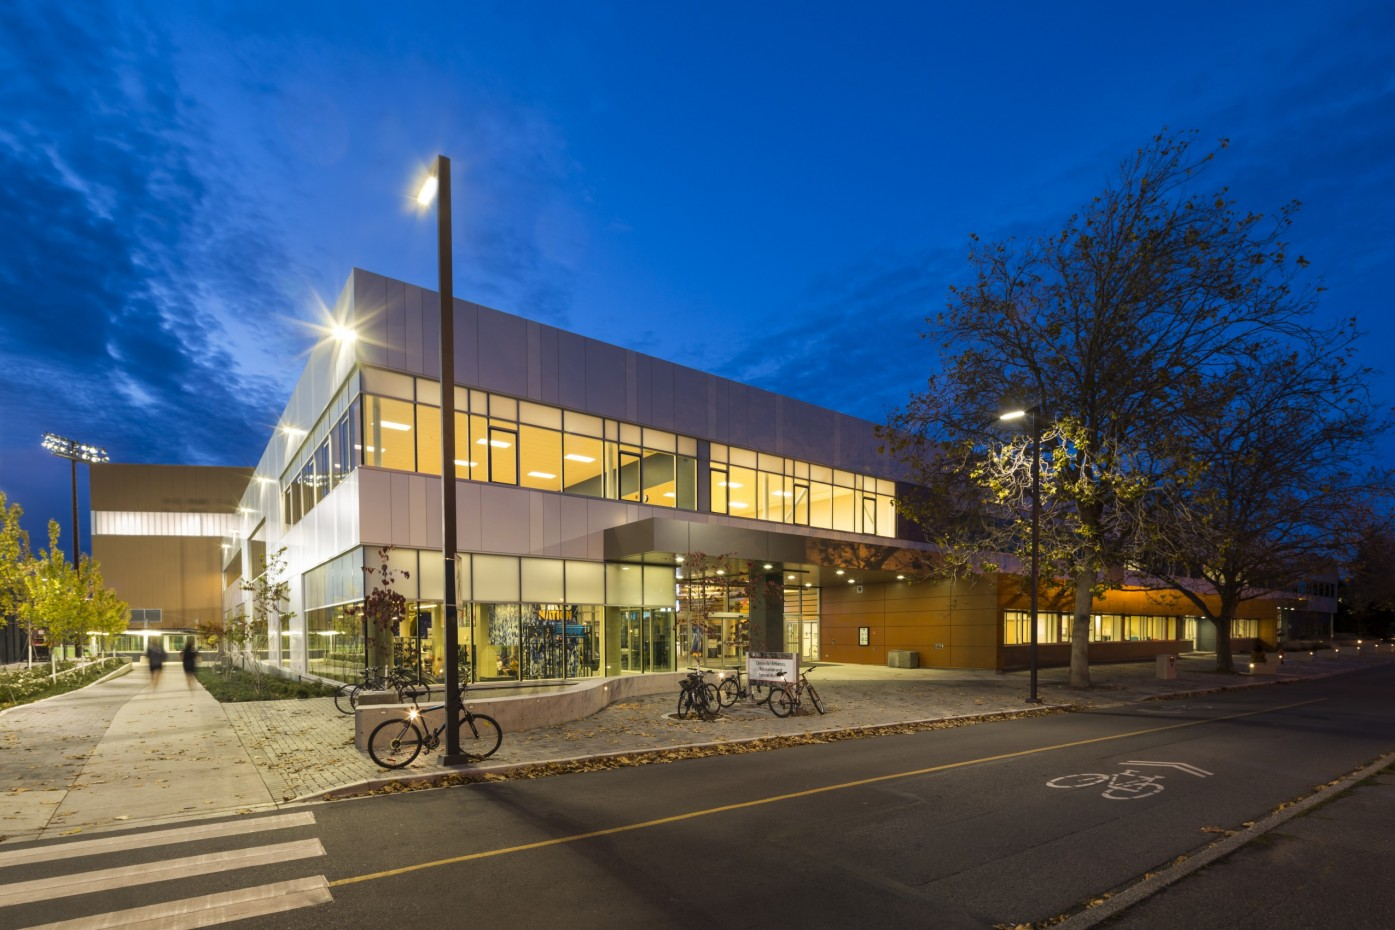 University of Victoria, Centre for Athletics, Recreation and Special Abilities